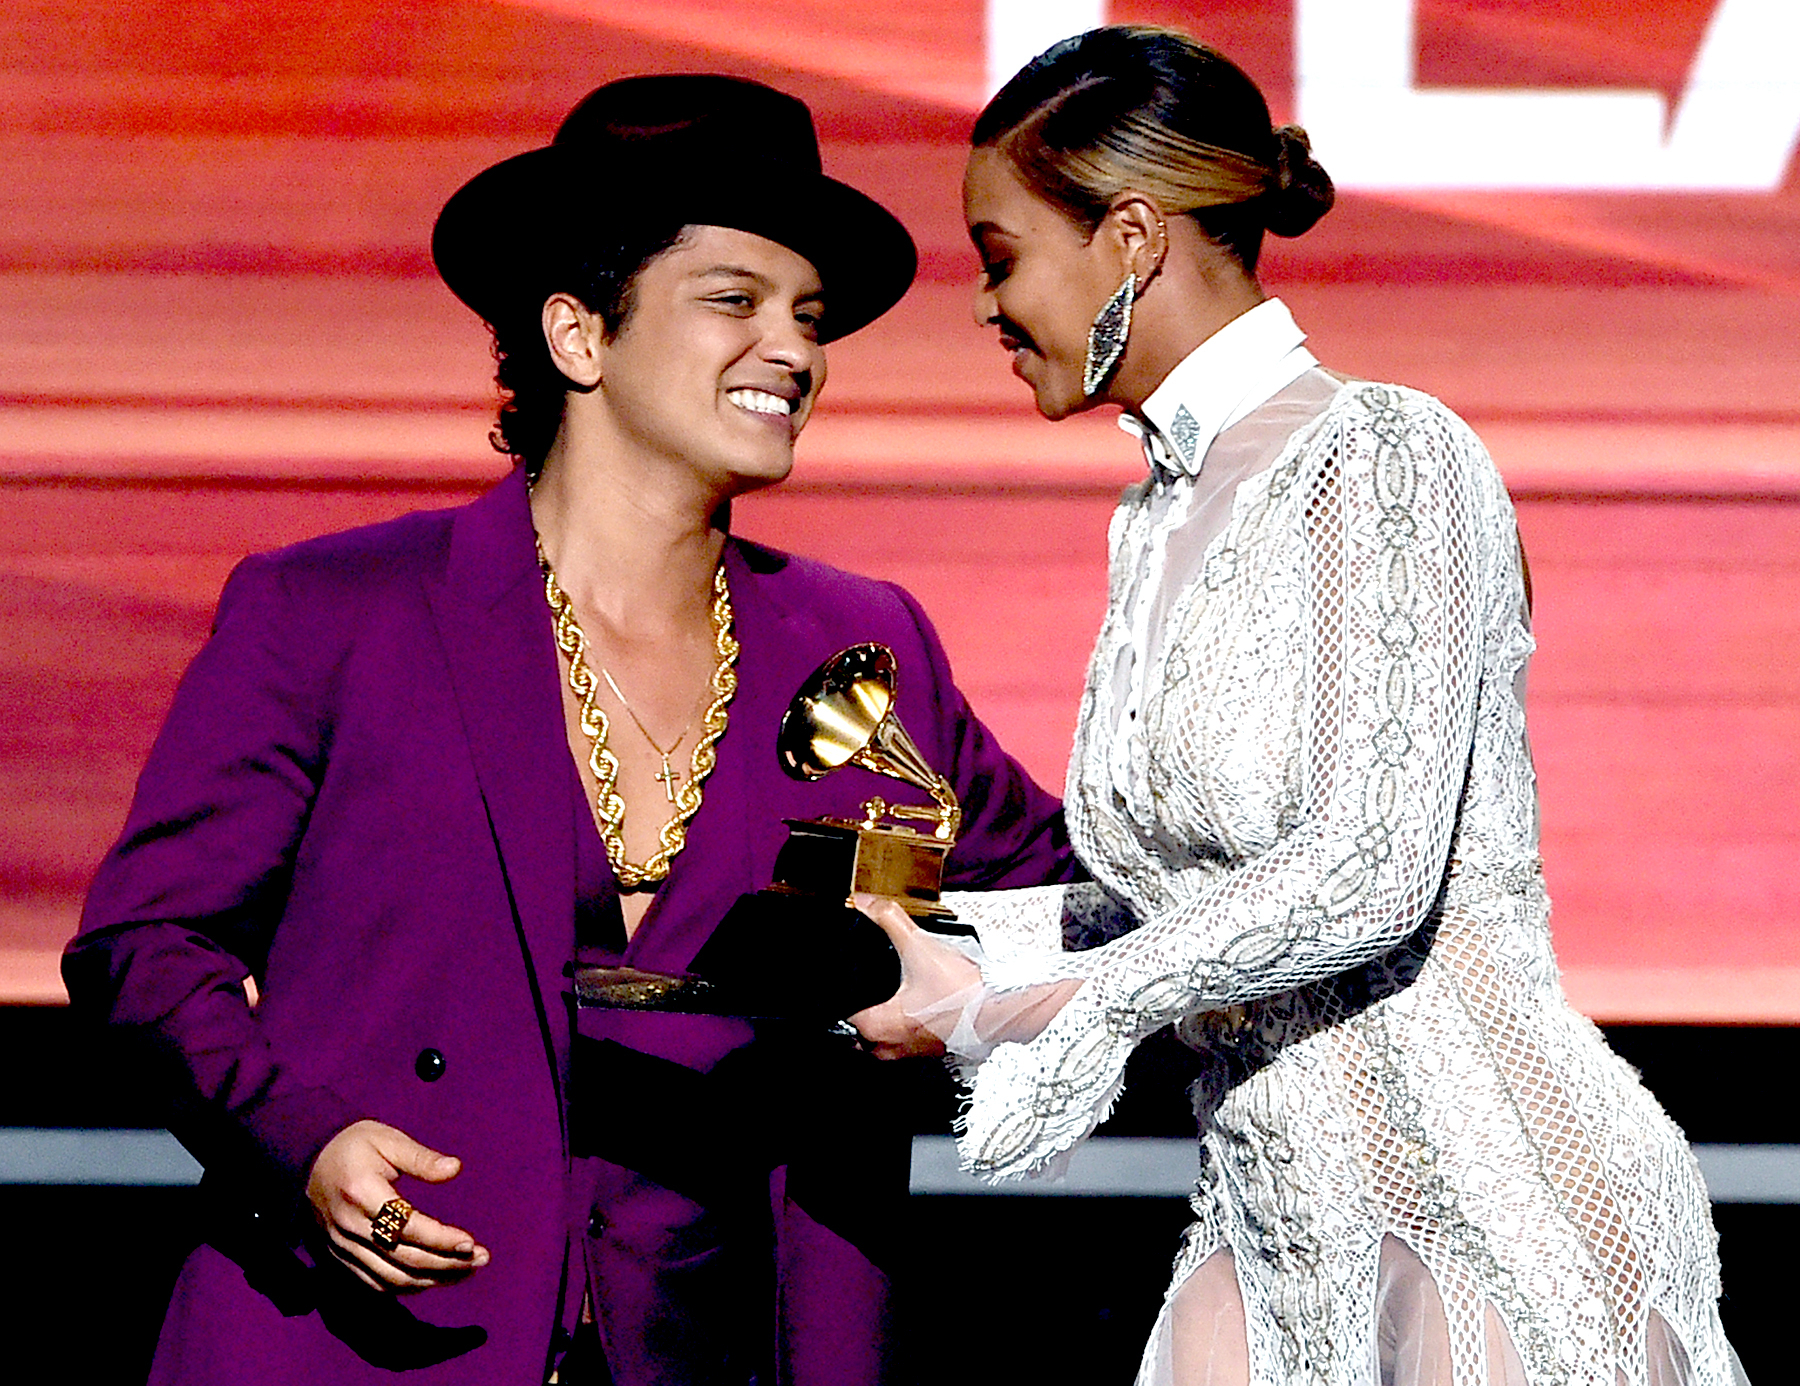 Beyonce (R) presents the Record Of The Year award to recording artist Bruno Mars for 'Uptown Funk' onstage during The 58th GRAMMY Awards at Staples Center on February 15, 2016 in Los Angeles, California.